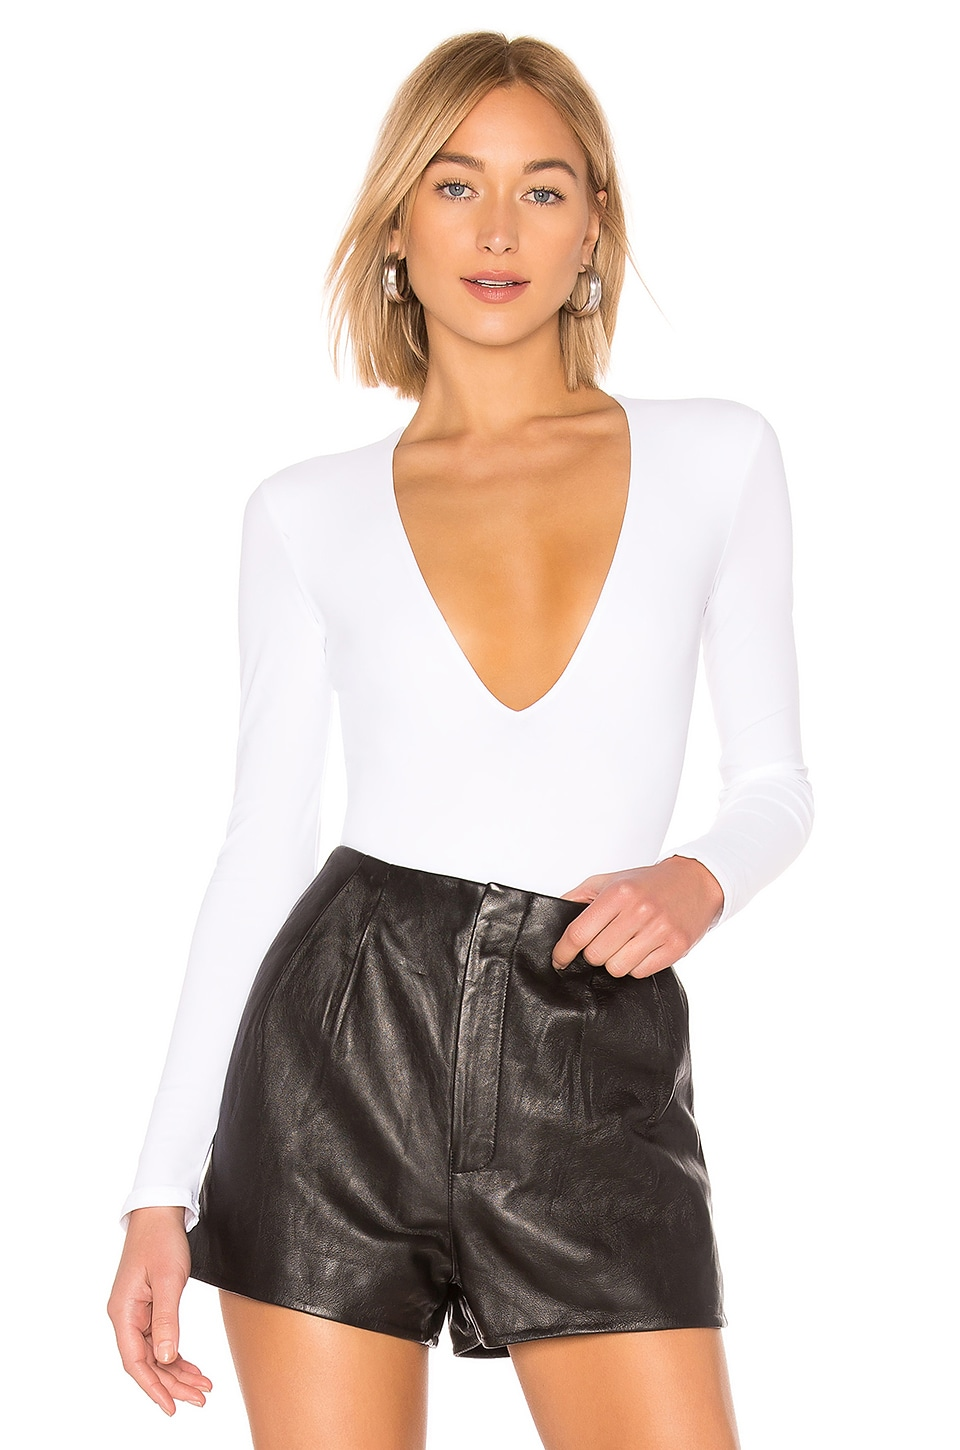 ALIX NYC Irving Bodysuit in White